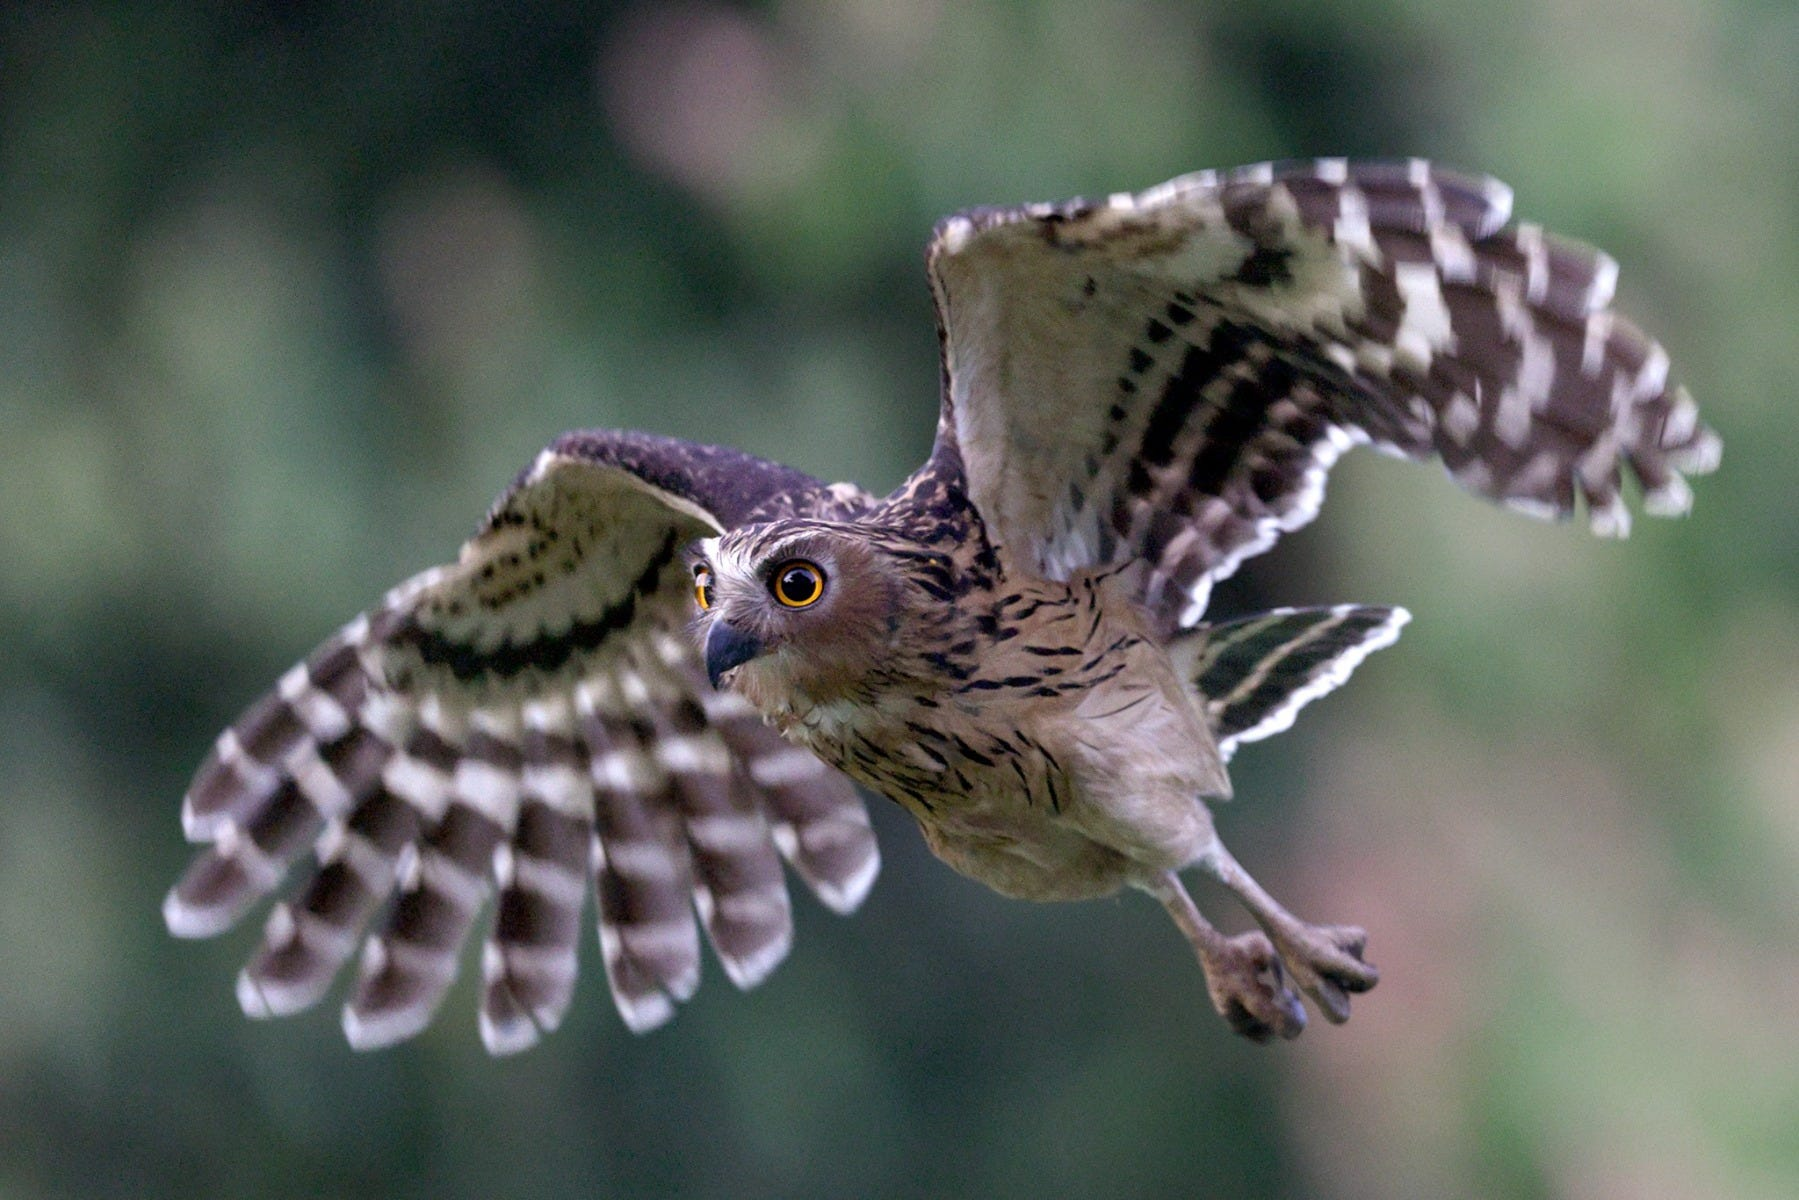 Buffy Fish Owl in flight shot by Canon Photographer William Tan using Canon EOS R6